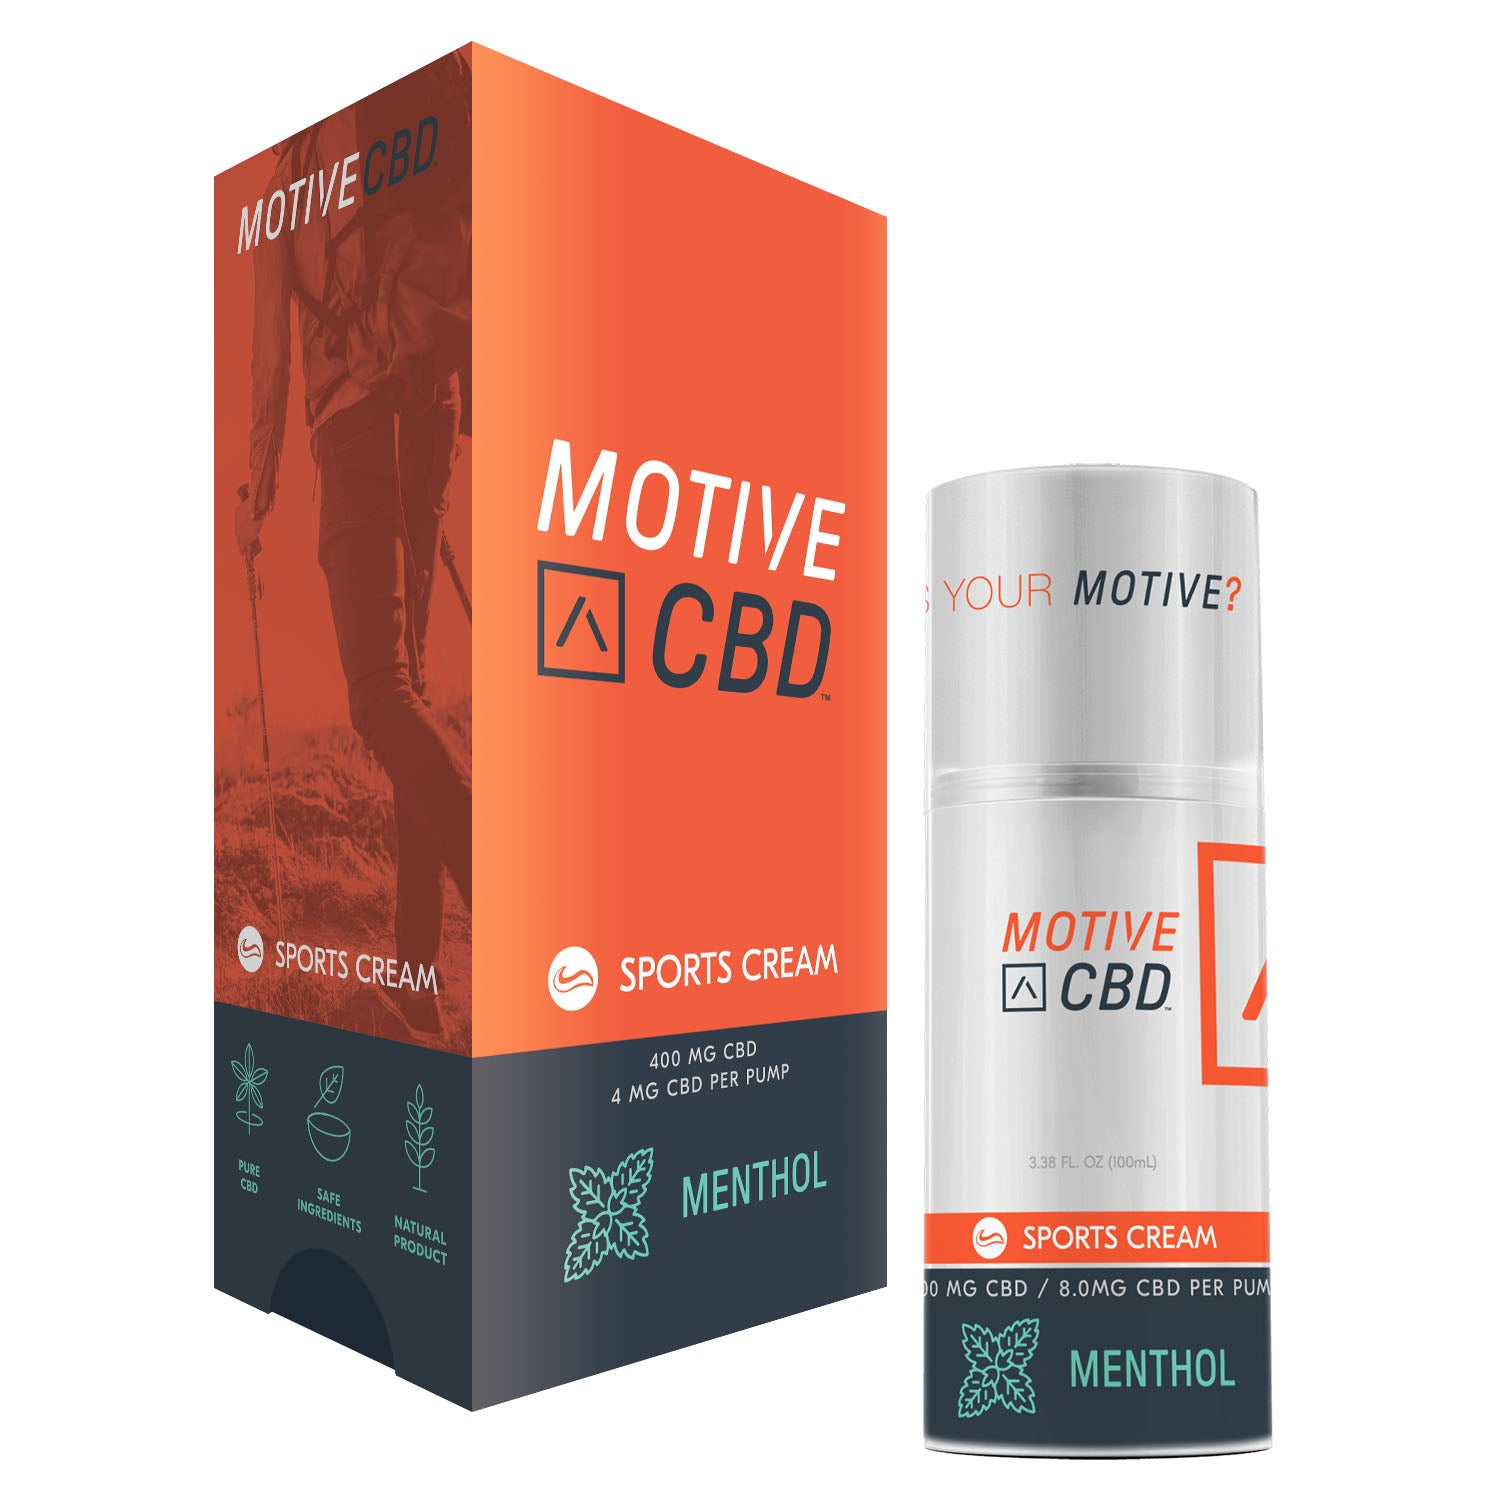 MOTIVE Sports Cream Menthol